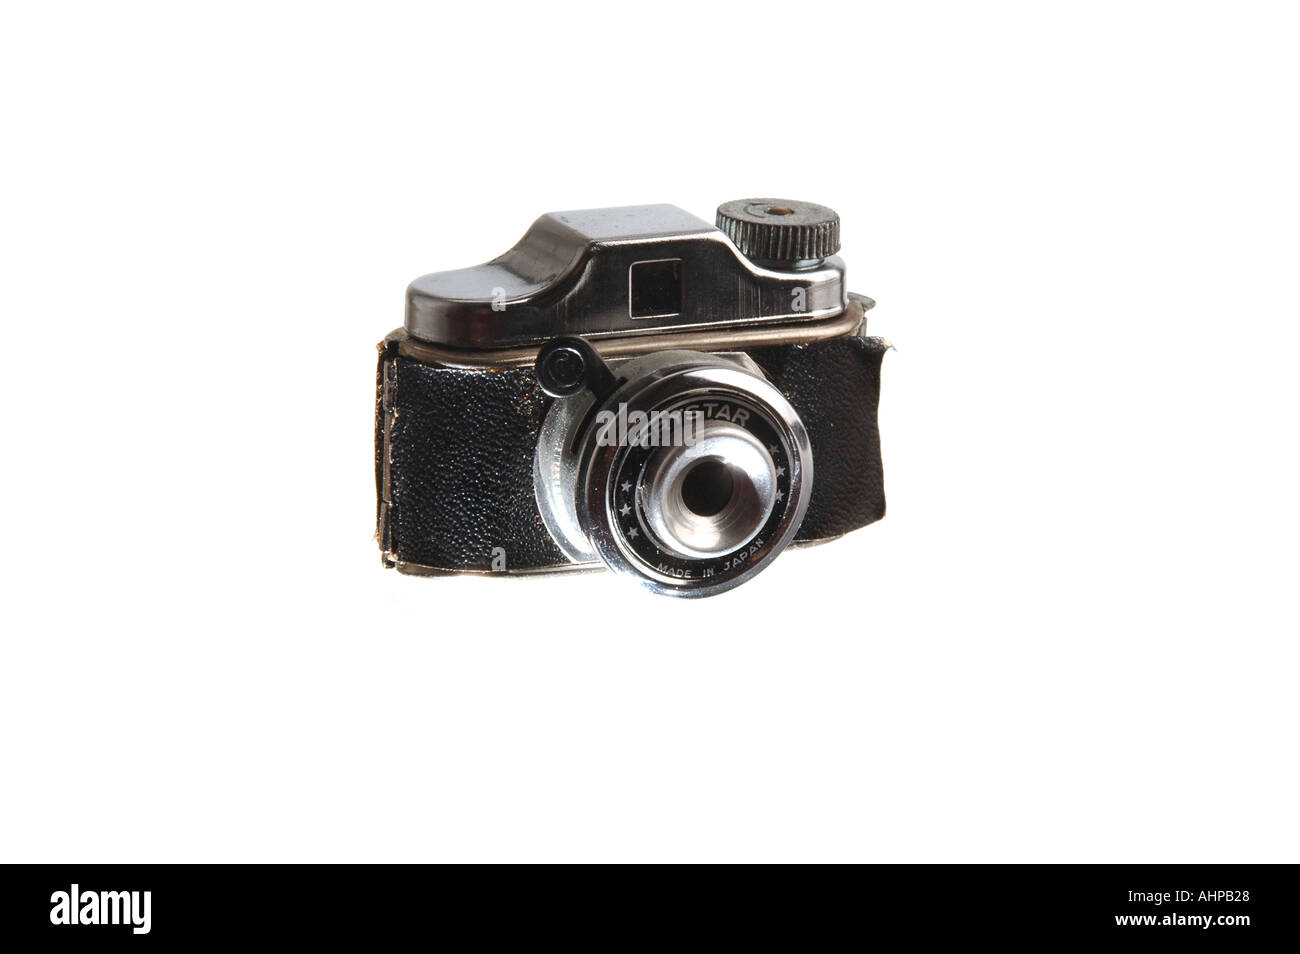 Small toy camera miniature antique chineese - Stock Image